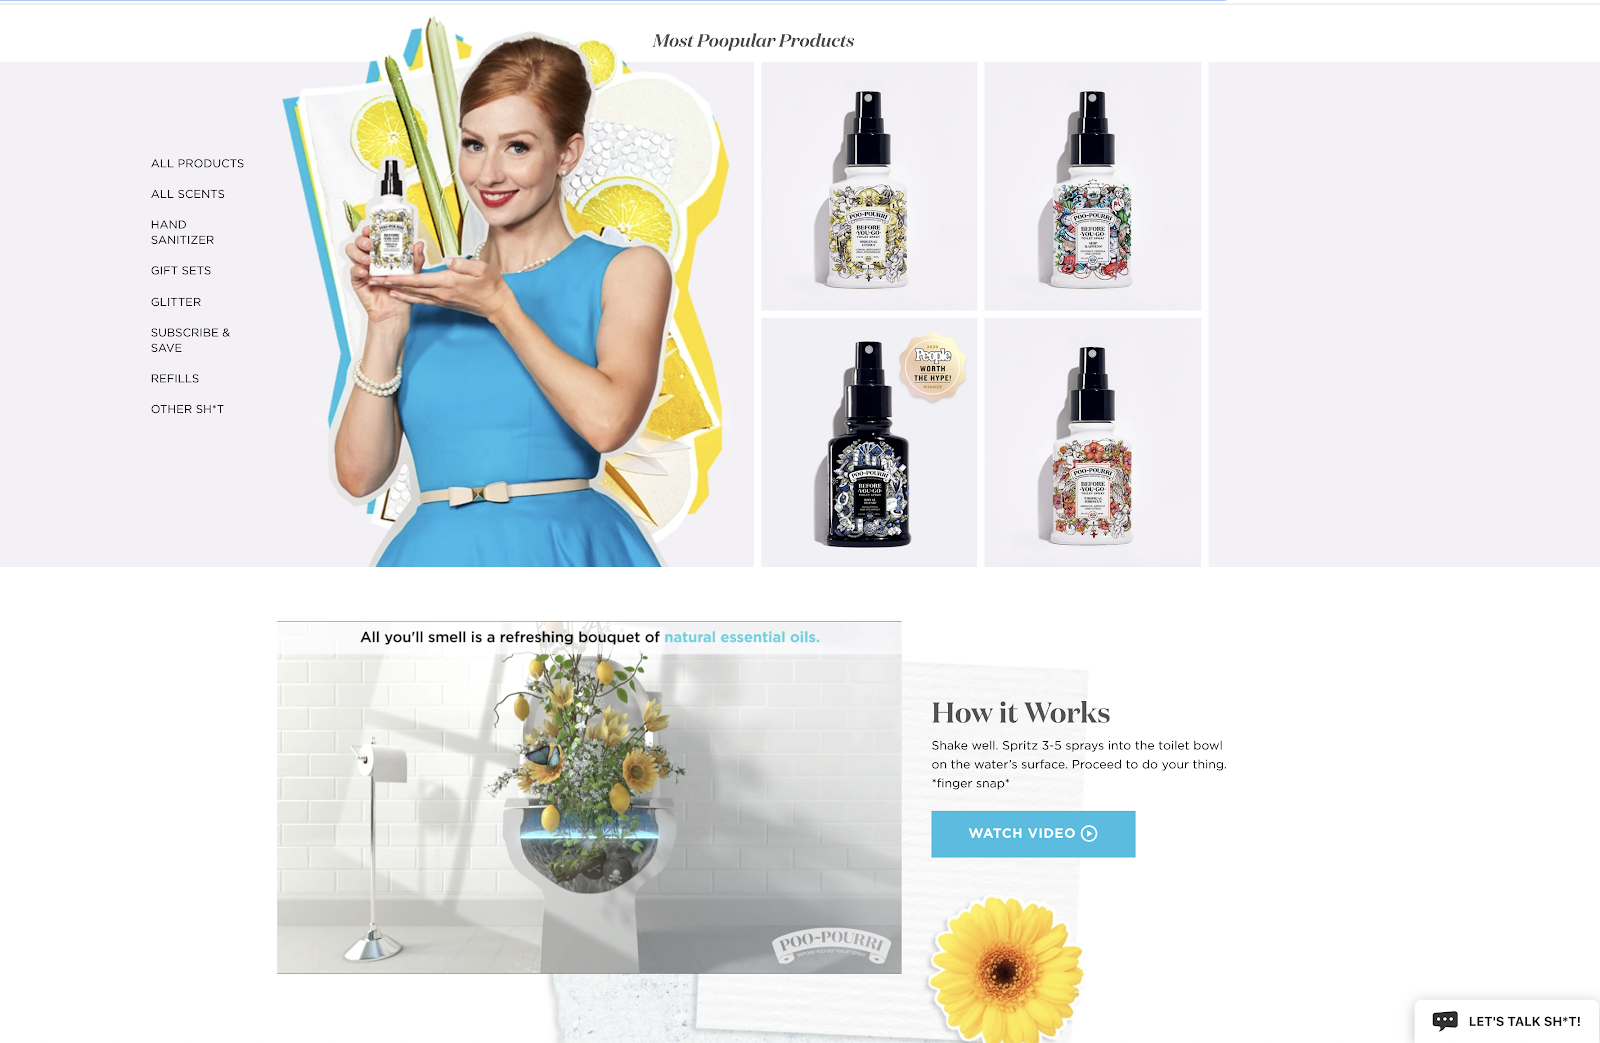 PooPurri Product Page with Video